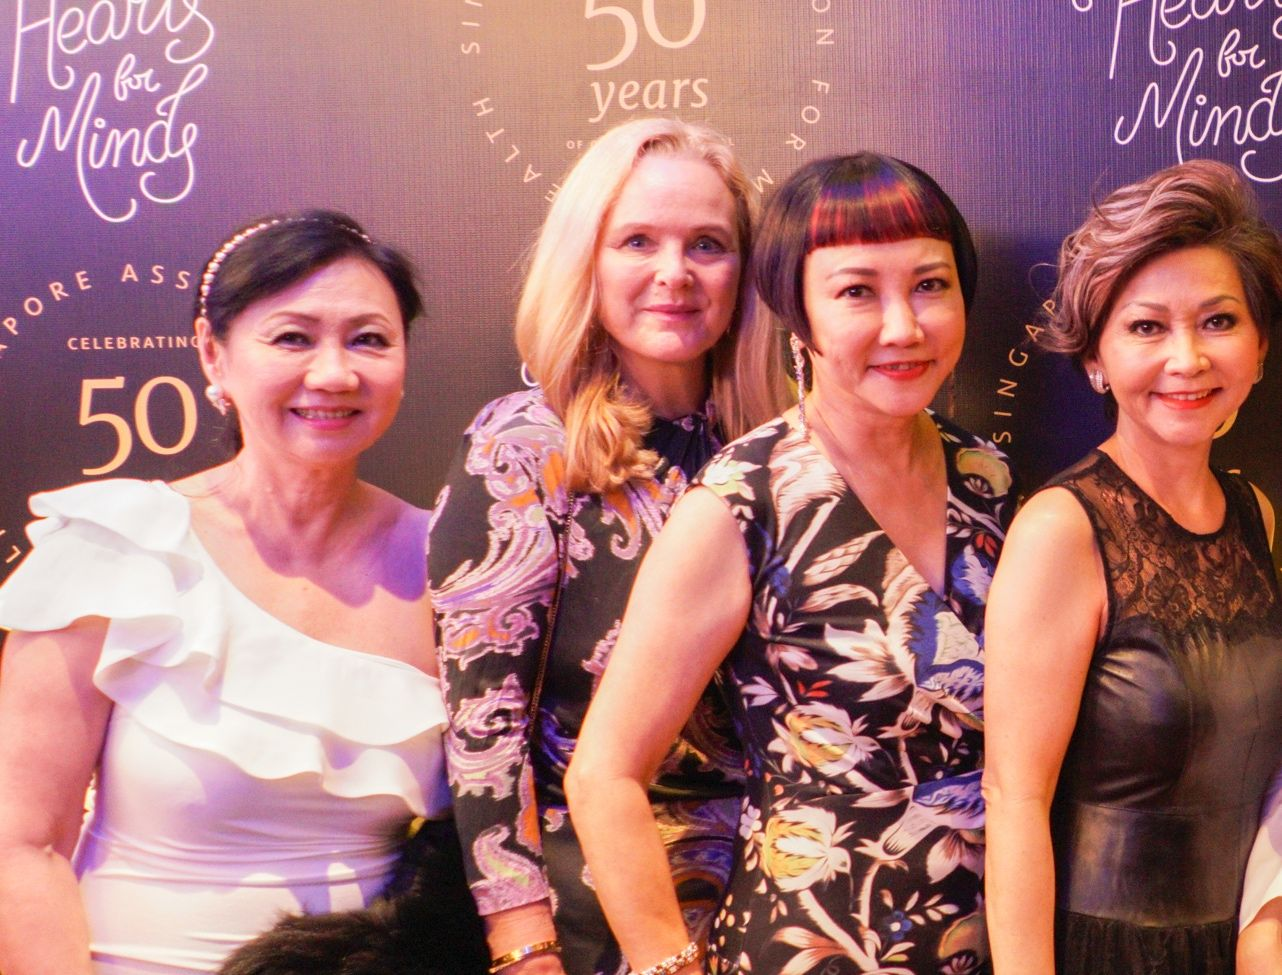 Renee Tan, Mette Hartman, Frances Low, Allison Chee